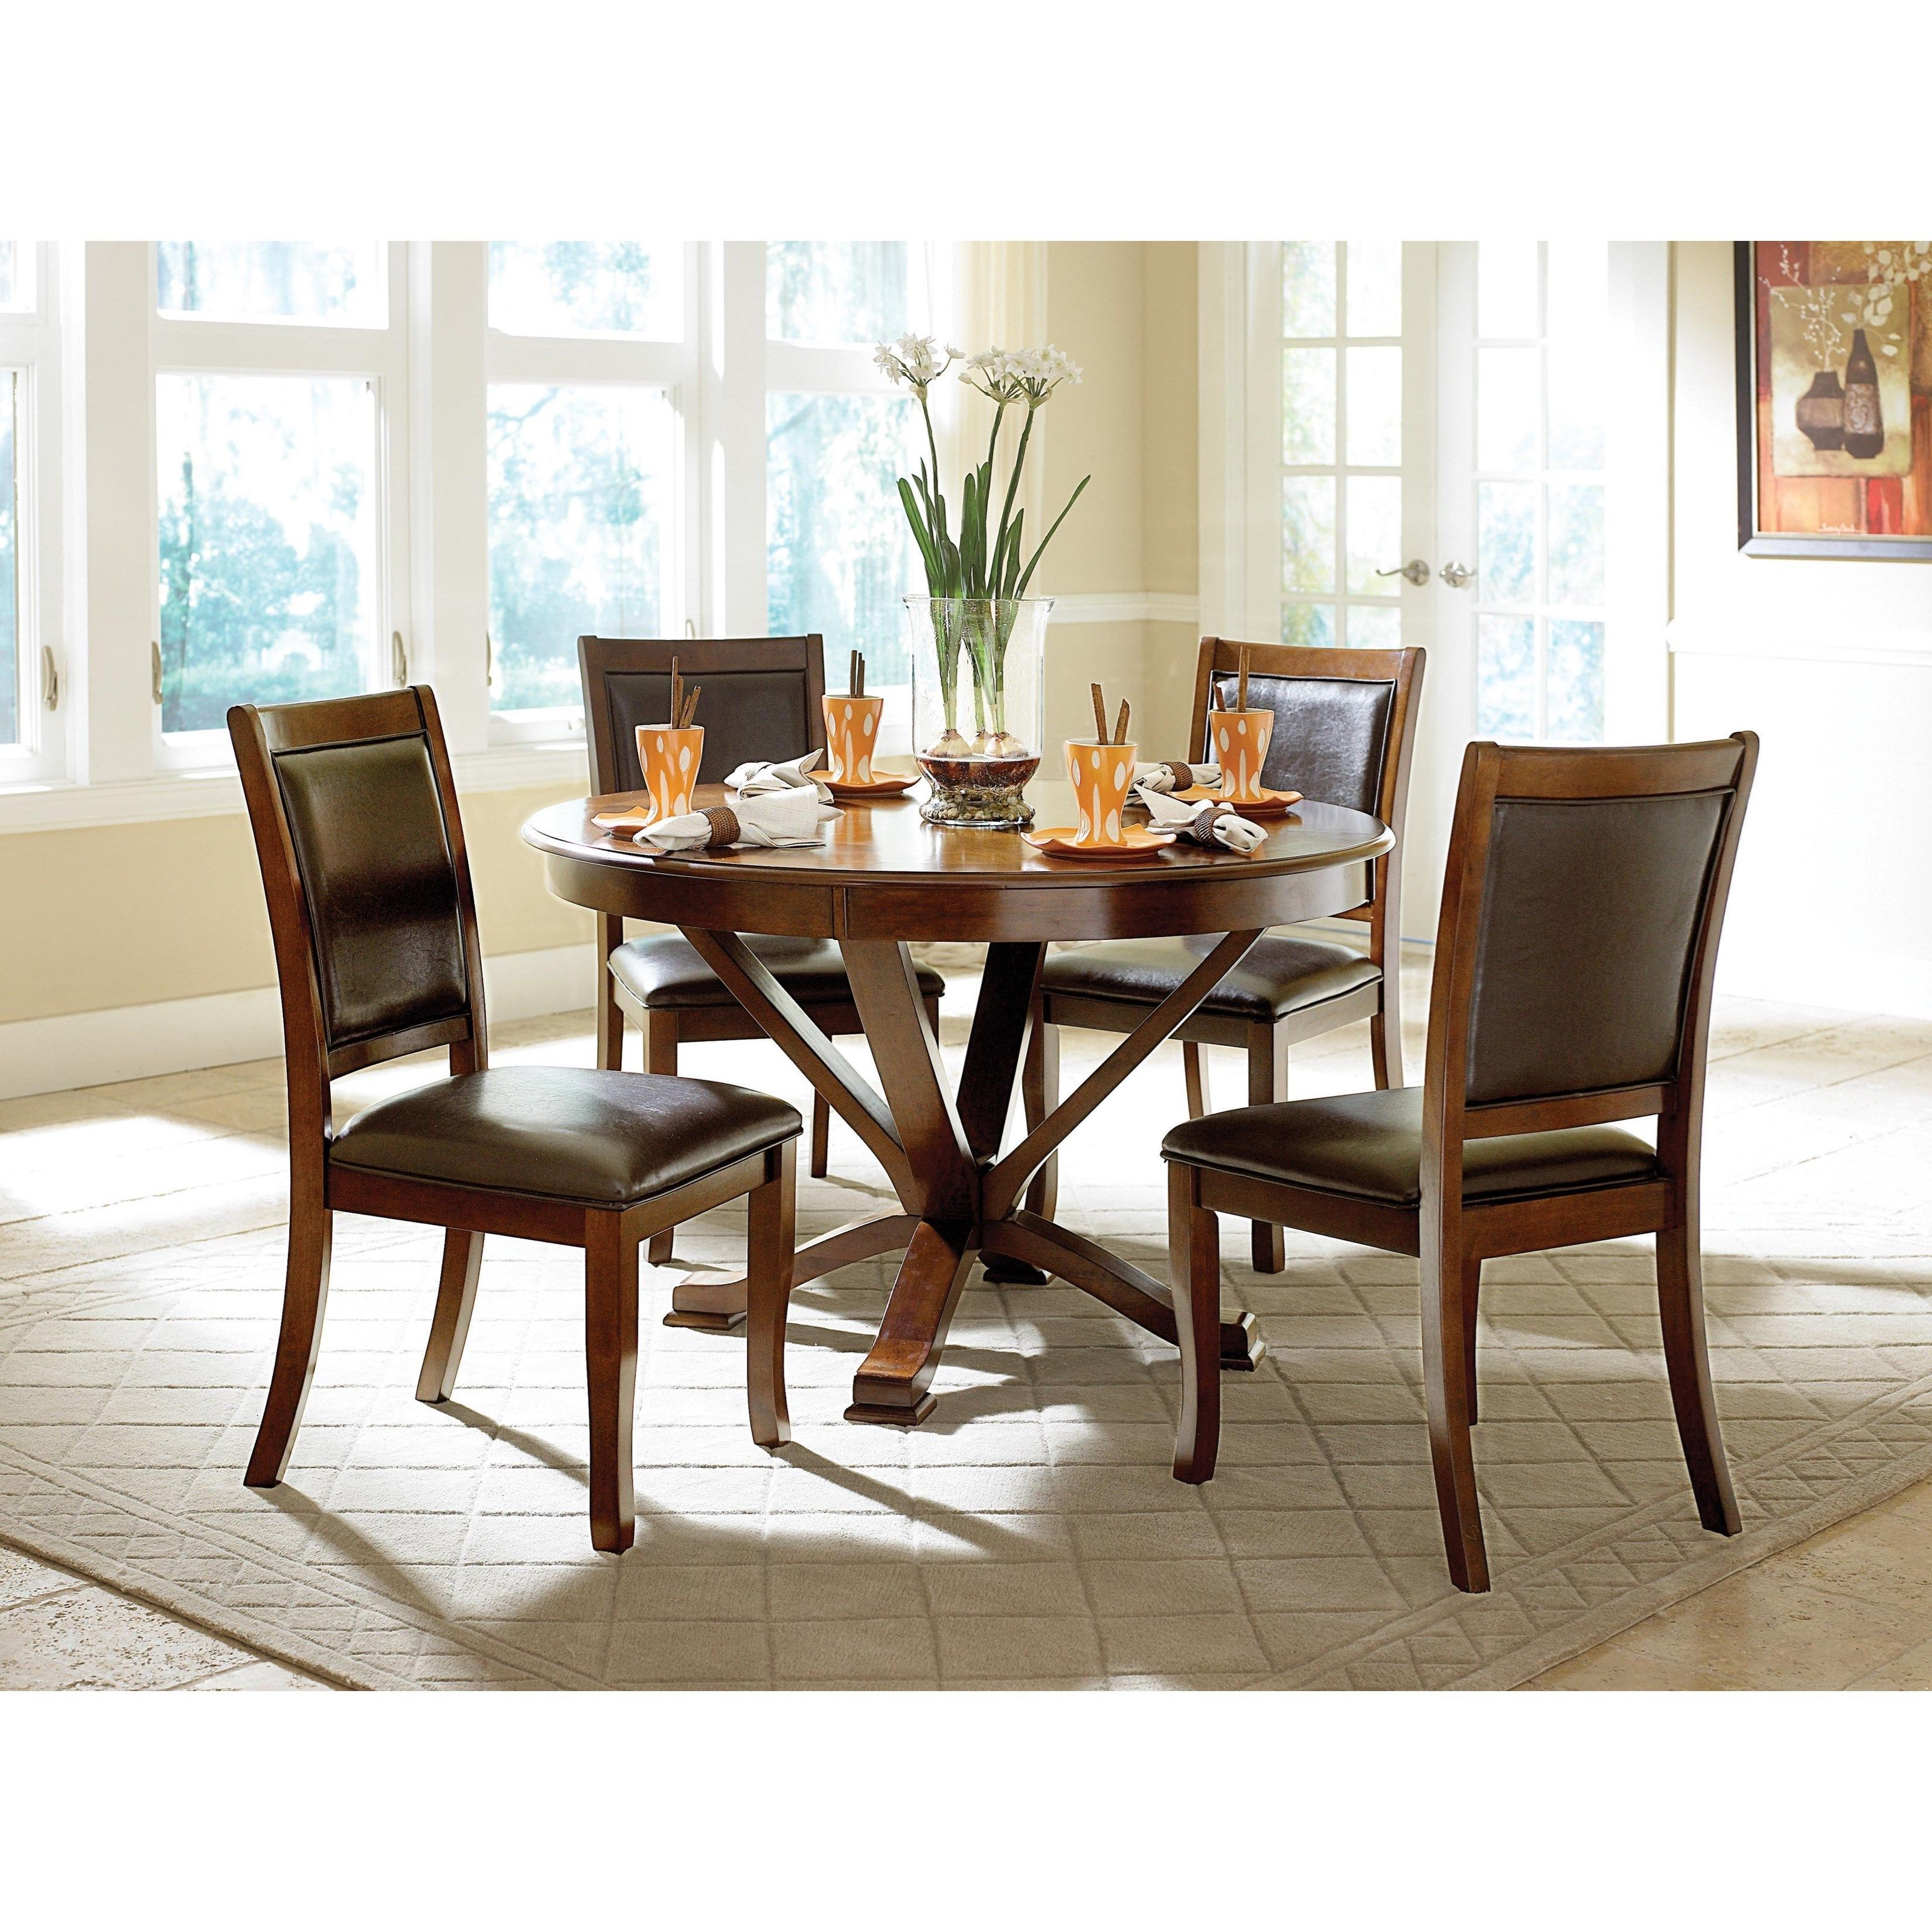 Helena Transitional Round Table And Chair Set With Upholstered